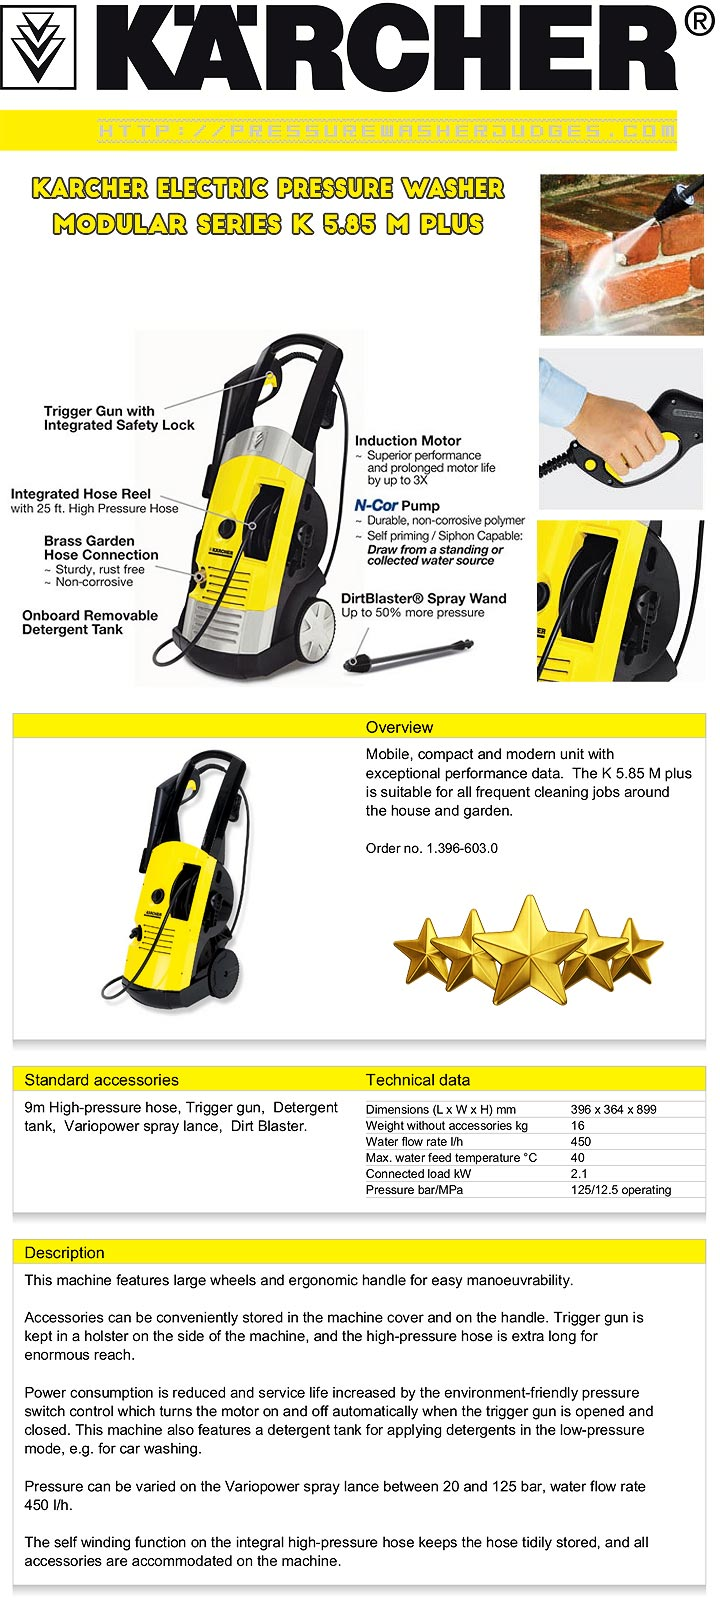 Infographic Karcher Modular Series K 5.85 M Plus Review